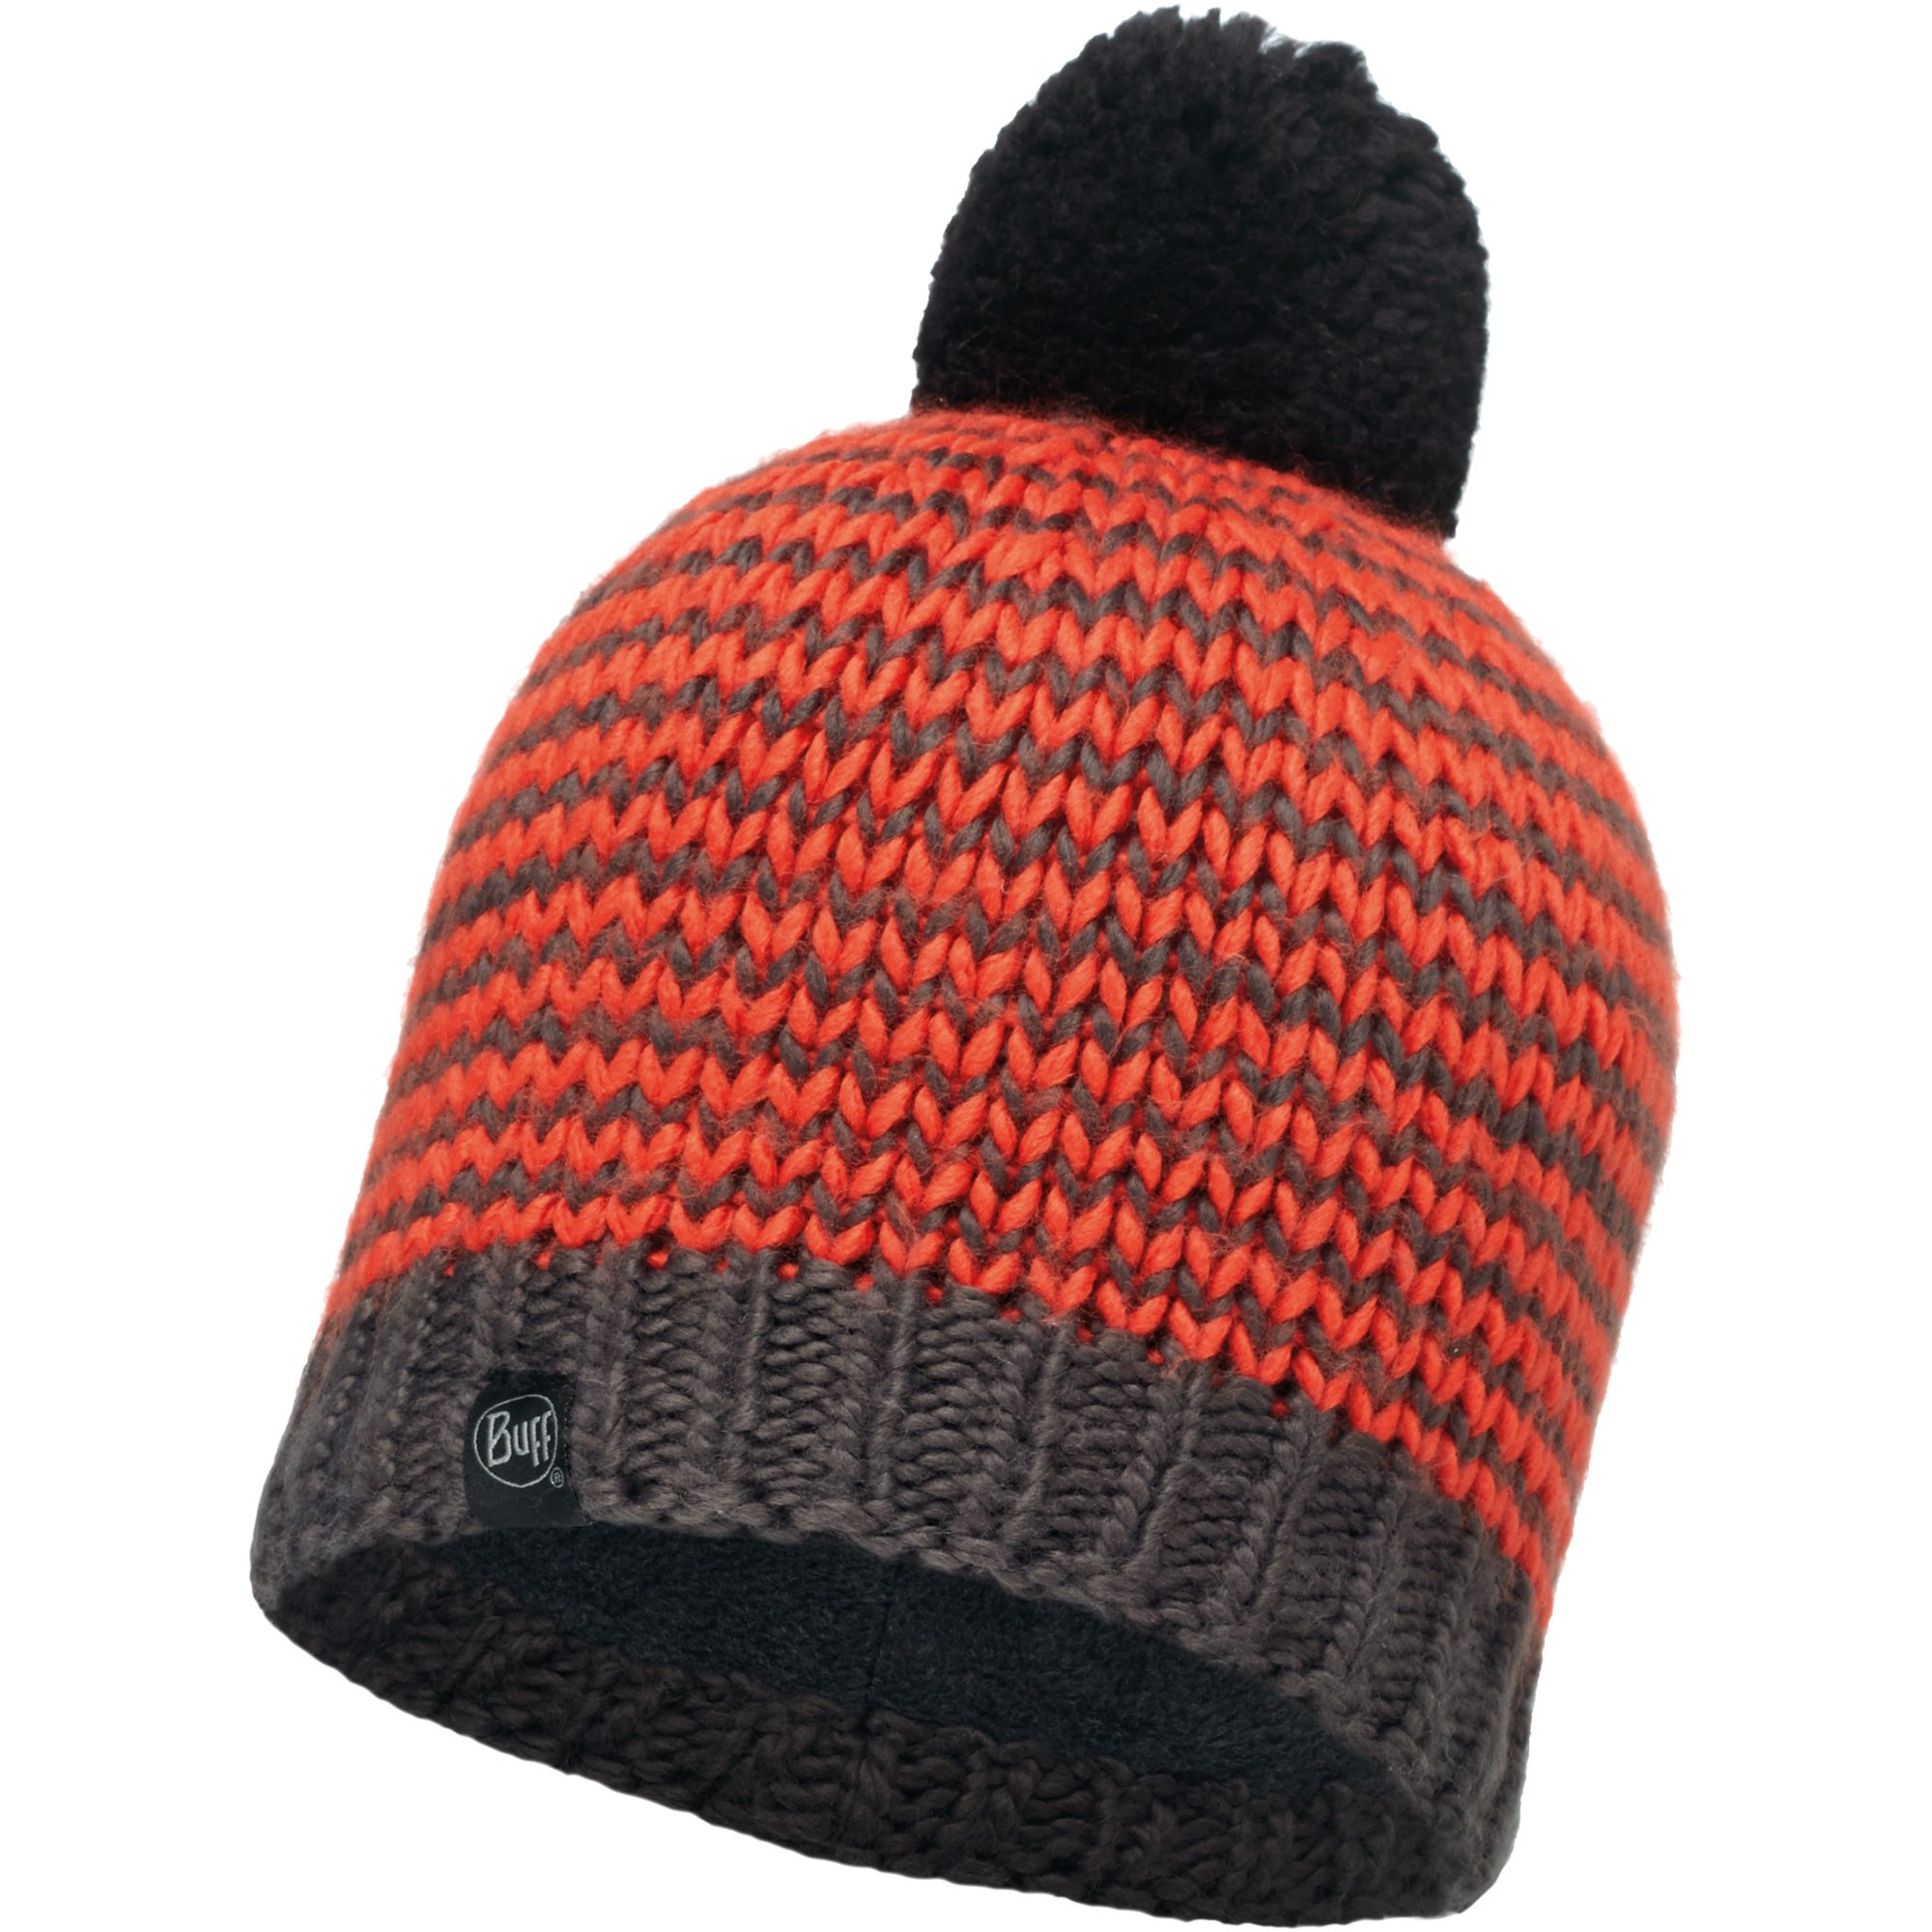 Buff Dorn Knitted Hat - Flame/Grey Vigore